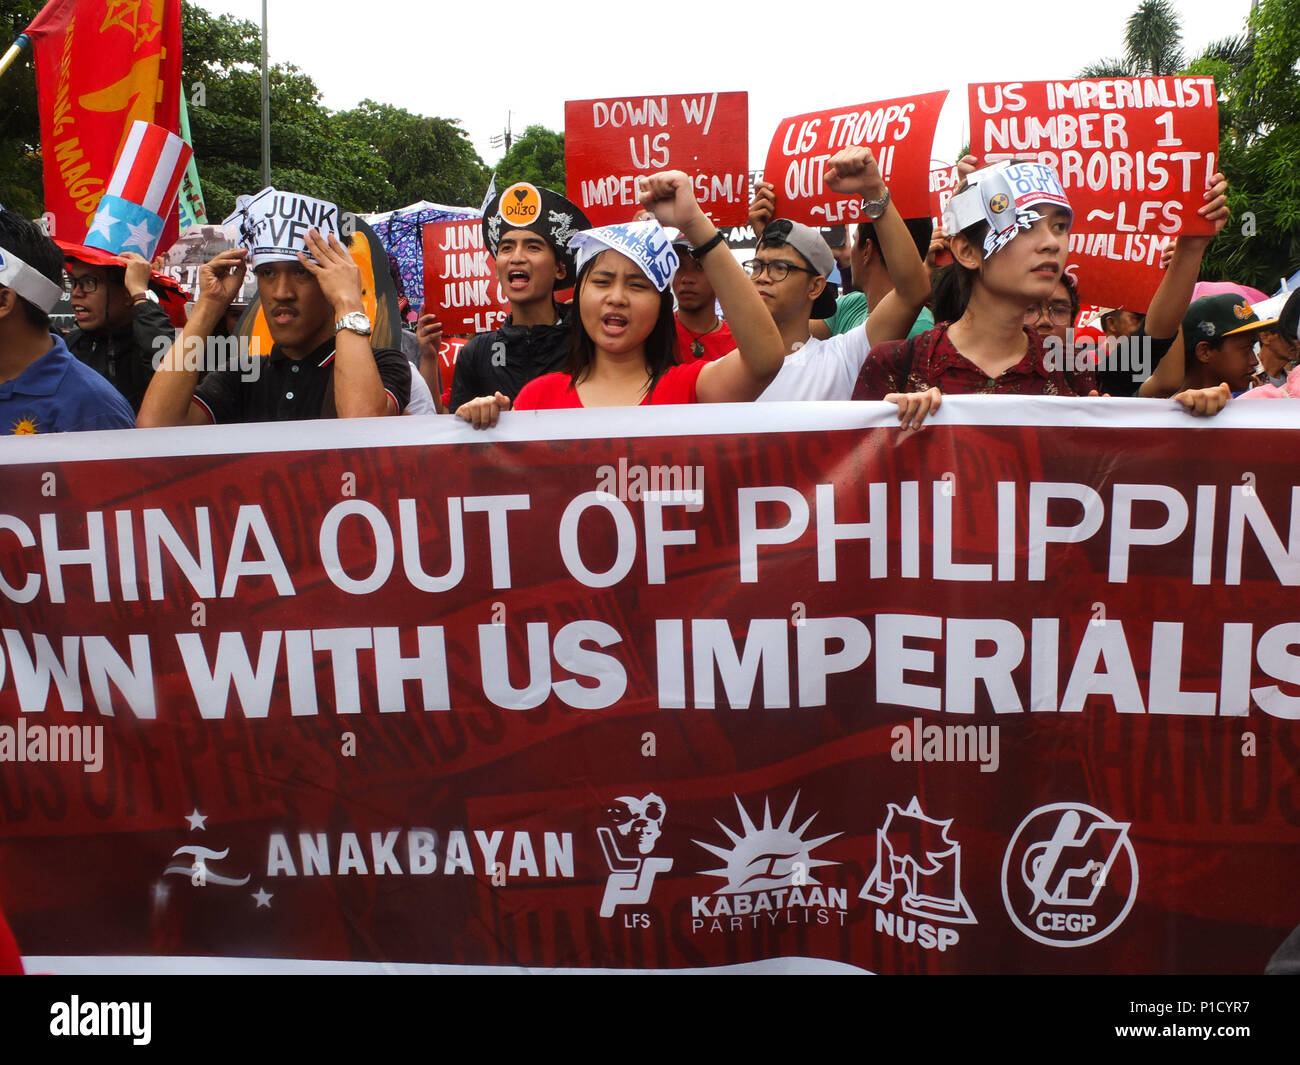 Manila, Philippines. 30th Jan, 2018. Militant students condemns US imperialism and Chinese incursions in the West Philippine Sea.While the Philippines celebrated it's 120th Independence Day, militant groups staged a protest at the US Embassy, slaming President Rodrigo Duterte's Policies and programs. They said that would only benefit US, China and other foreign corporations. Credit: Josefiel Rivera/SOPA Images/ZUMA Wire/Alamy Live News - Stock Image